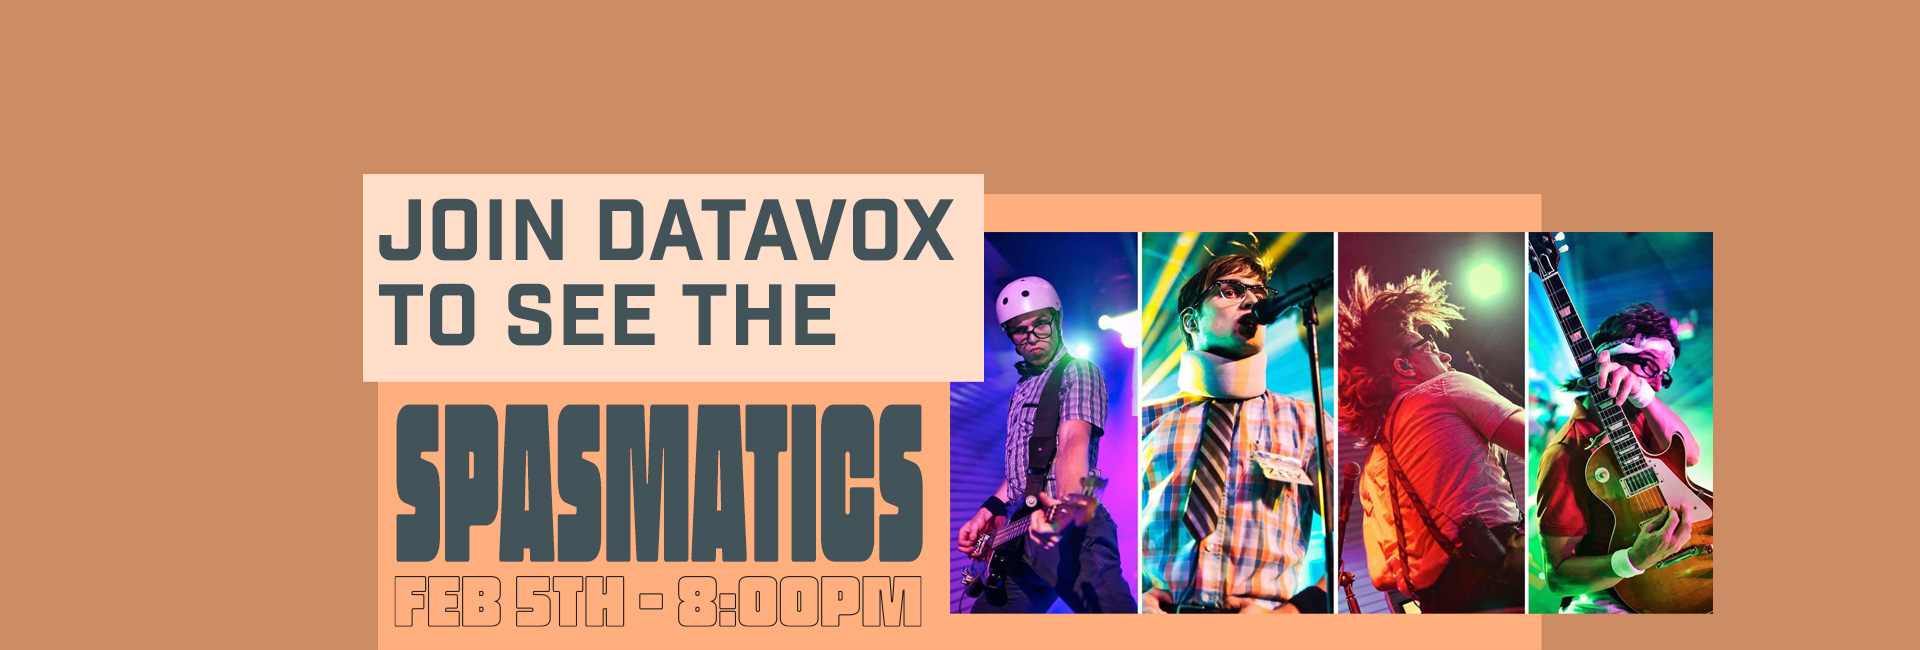 Join Datavox to see The Spasmatics